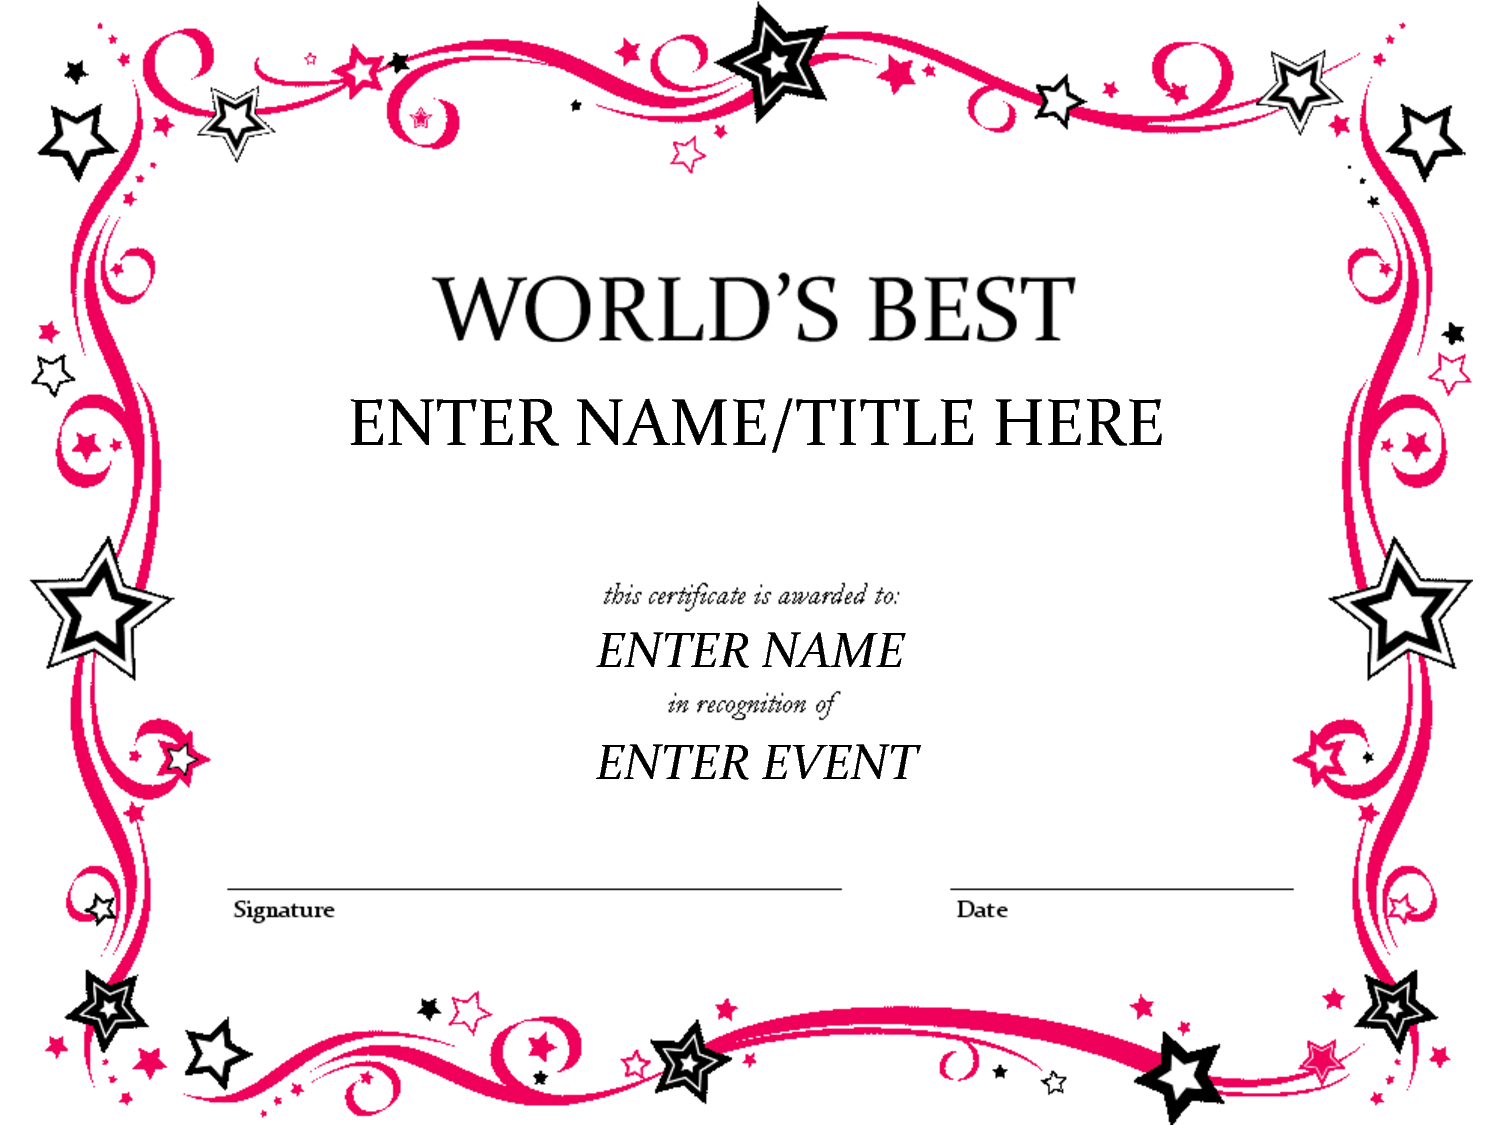 silly certificates awards templates - free funny award certificates templates worlds best